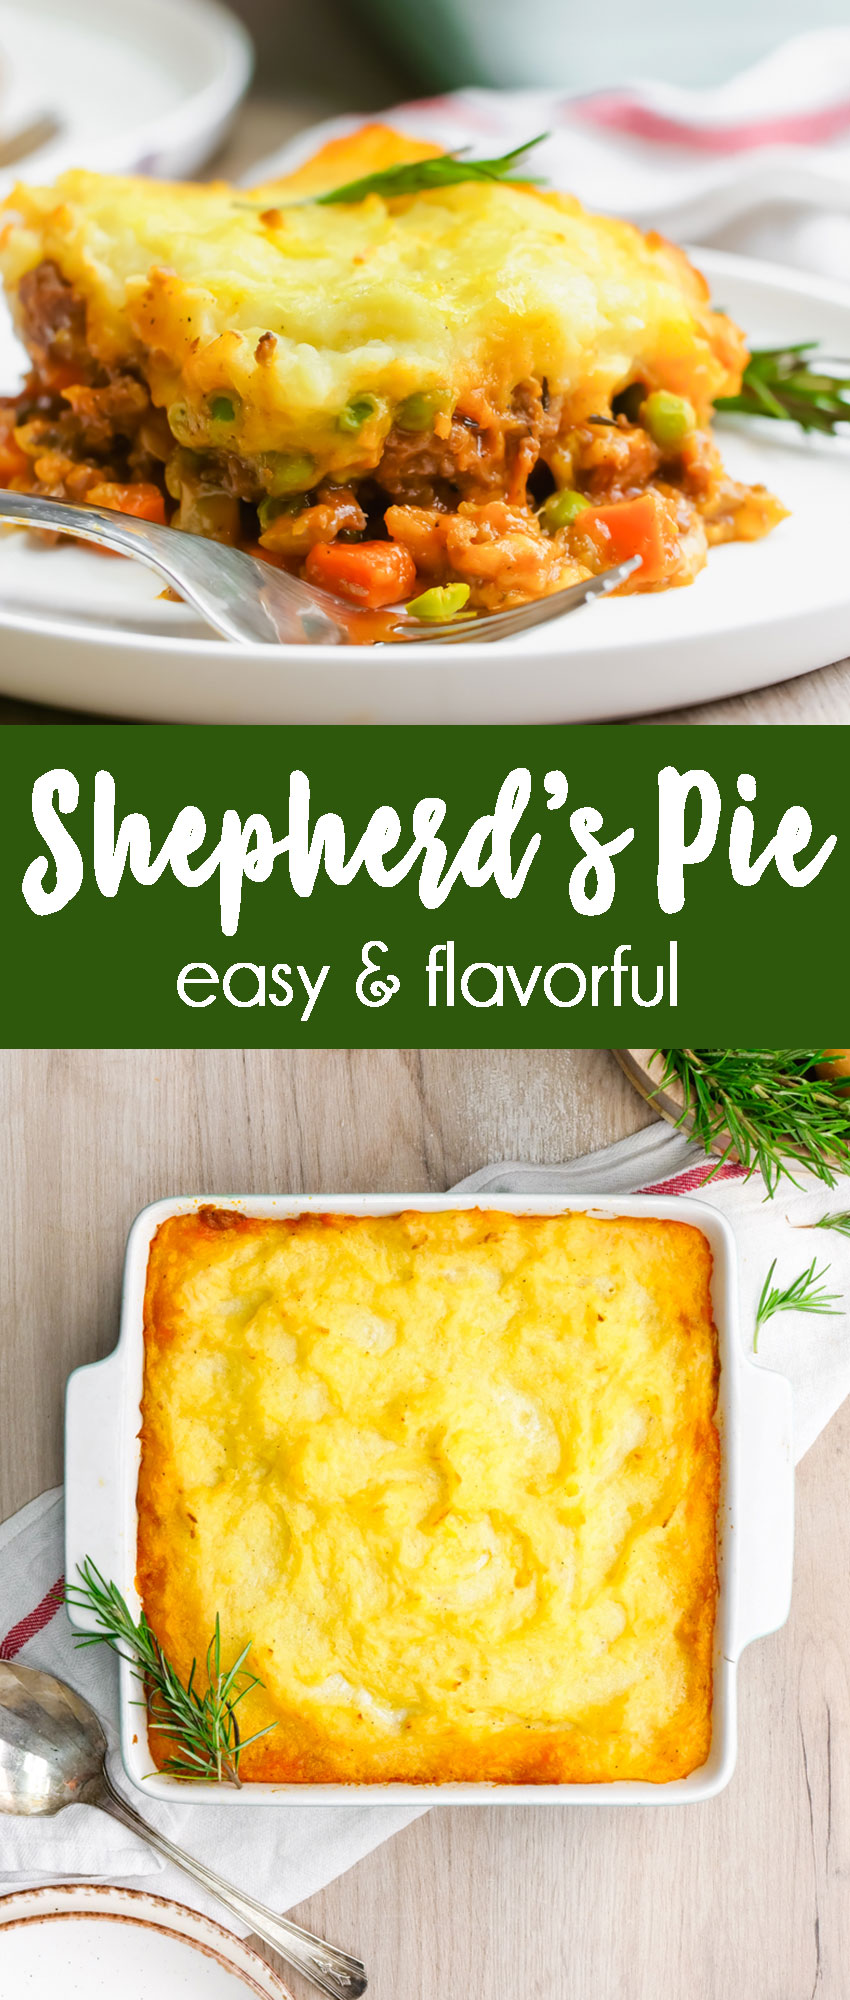 Shepherd's Pie, a meat pie with mashed potatoes